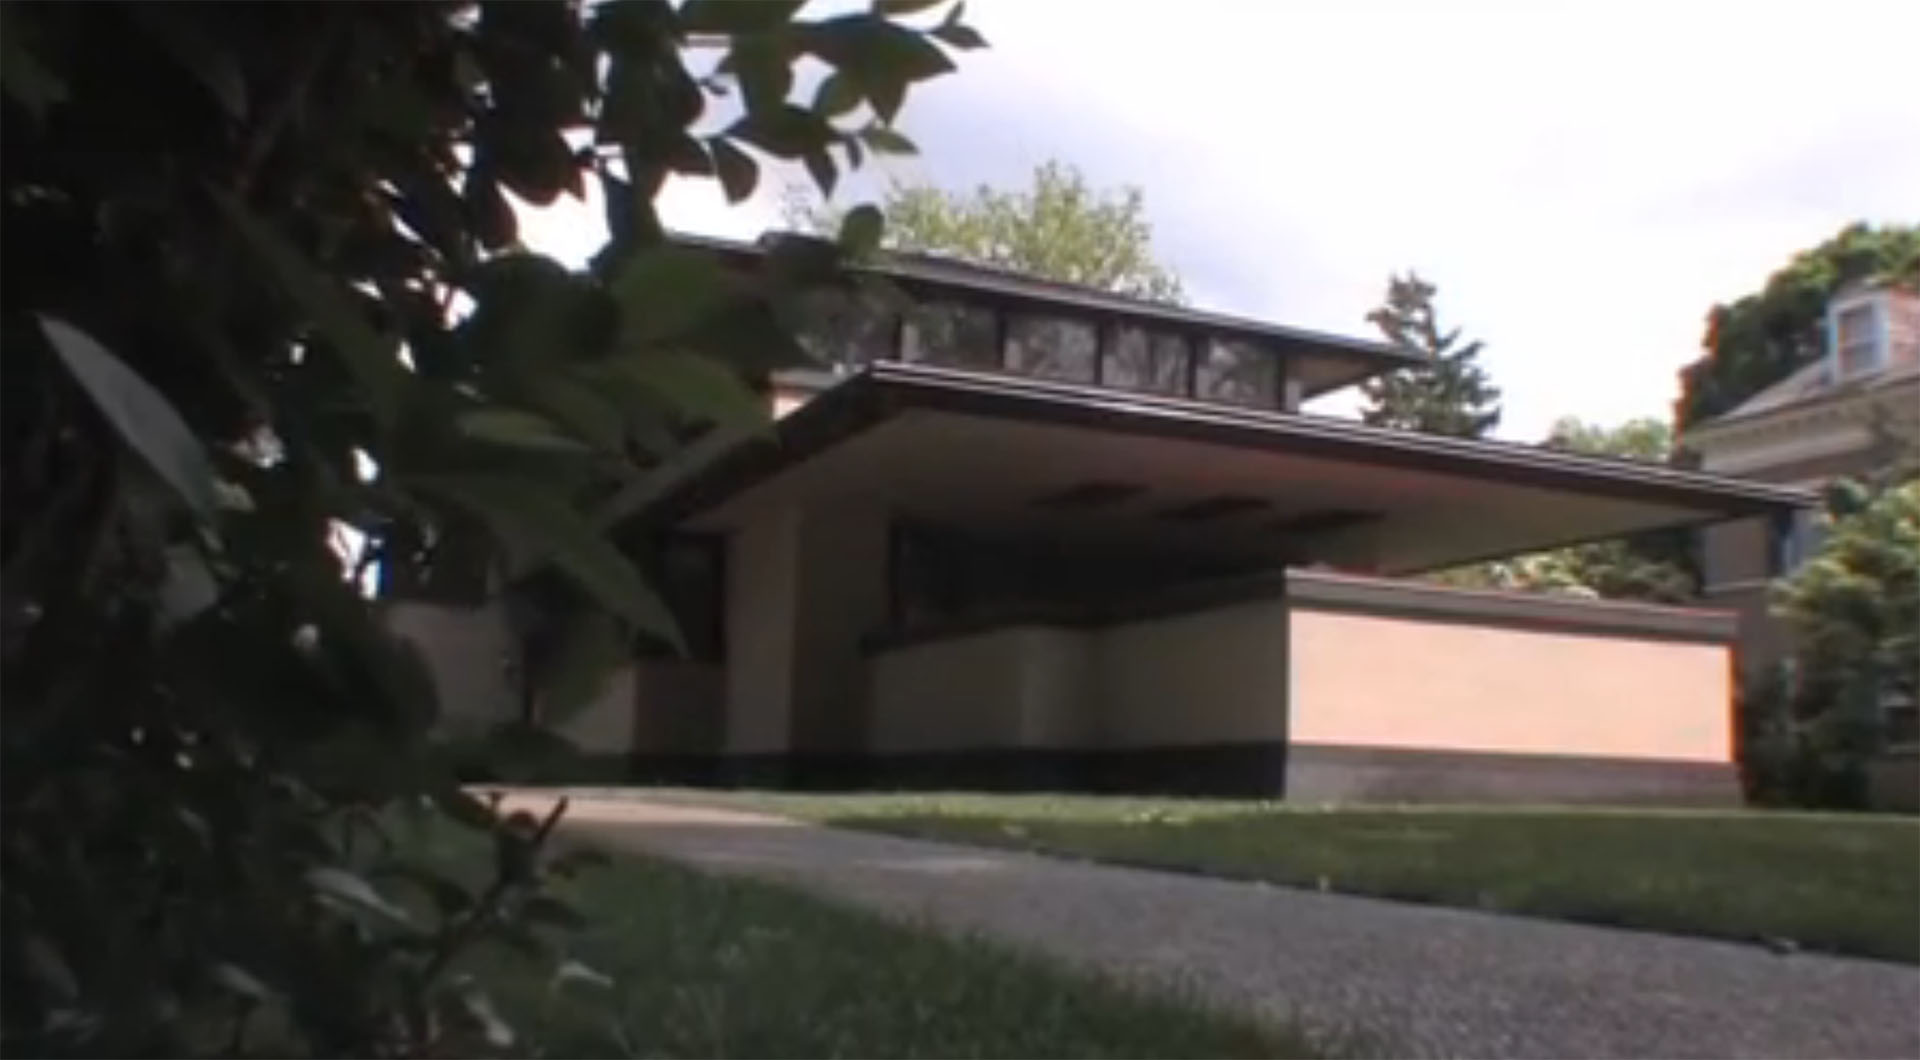 Frank Lloyd Wright's Boynton House: The Next Hundred Years